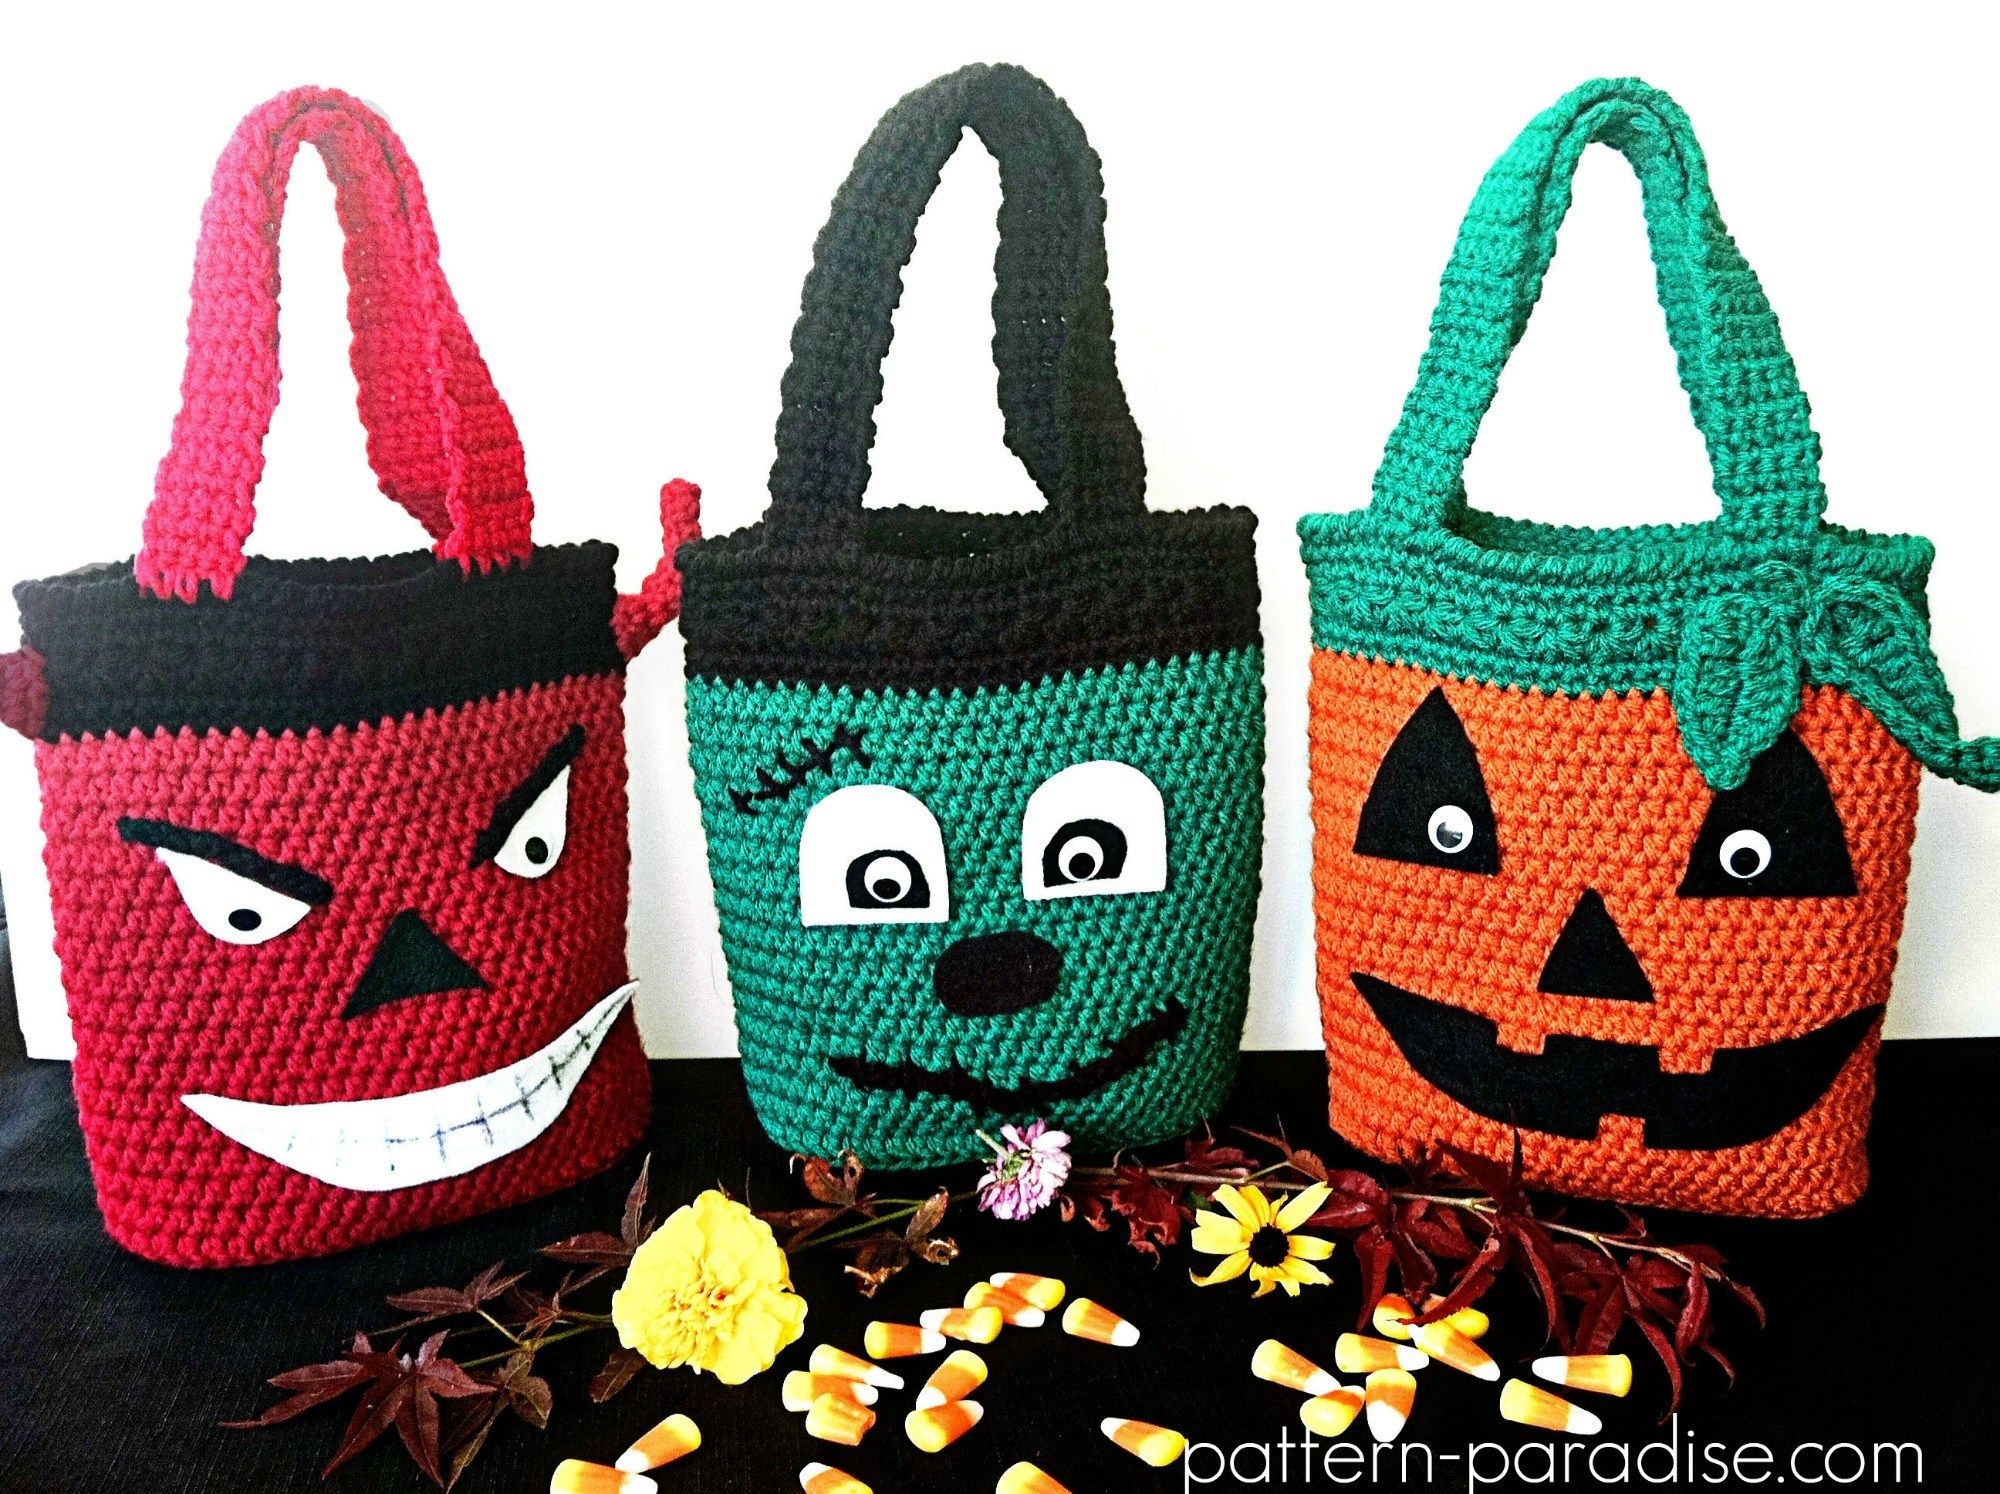 Free crochet pattern halloween bags by pattern paradise free crochet pattern halloween bags by pattern paradise bankloansurffo Image collections